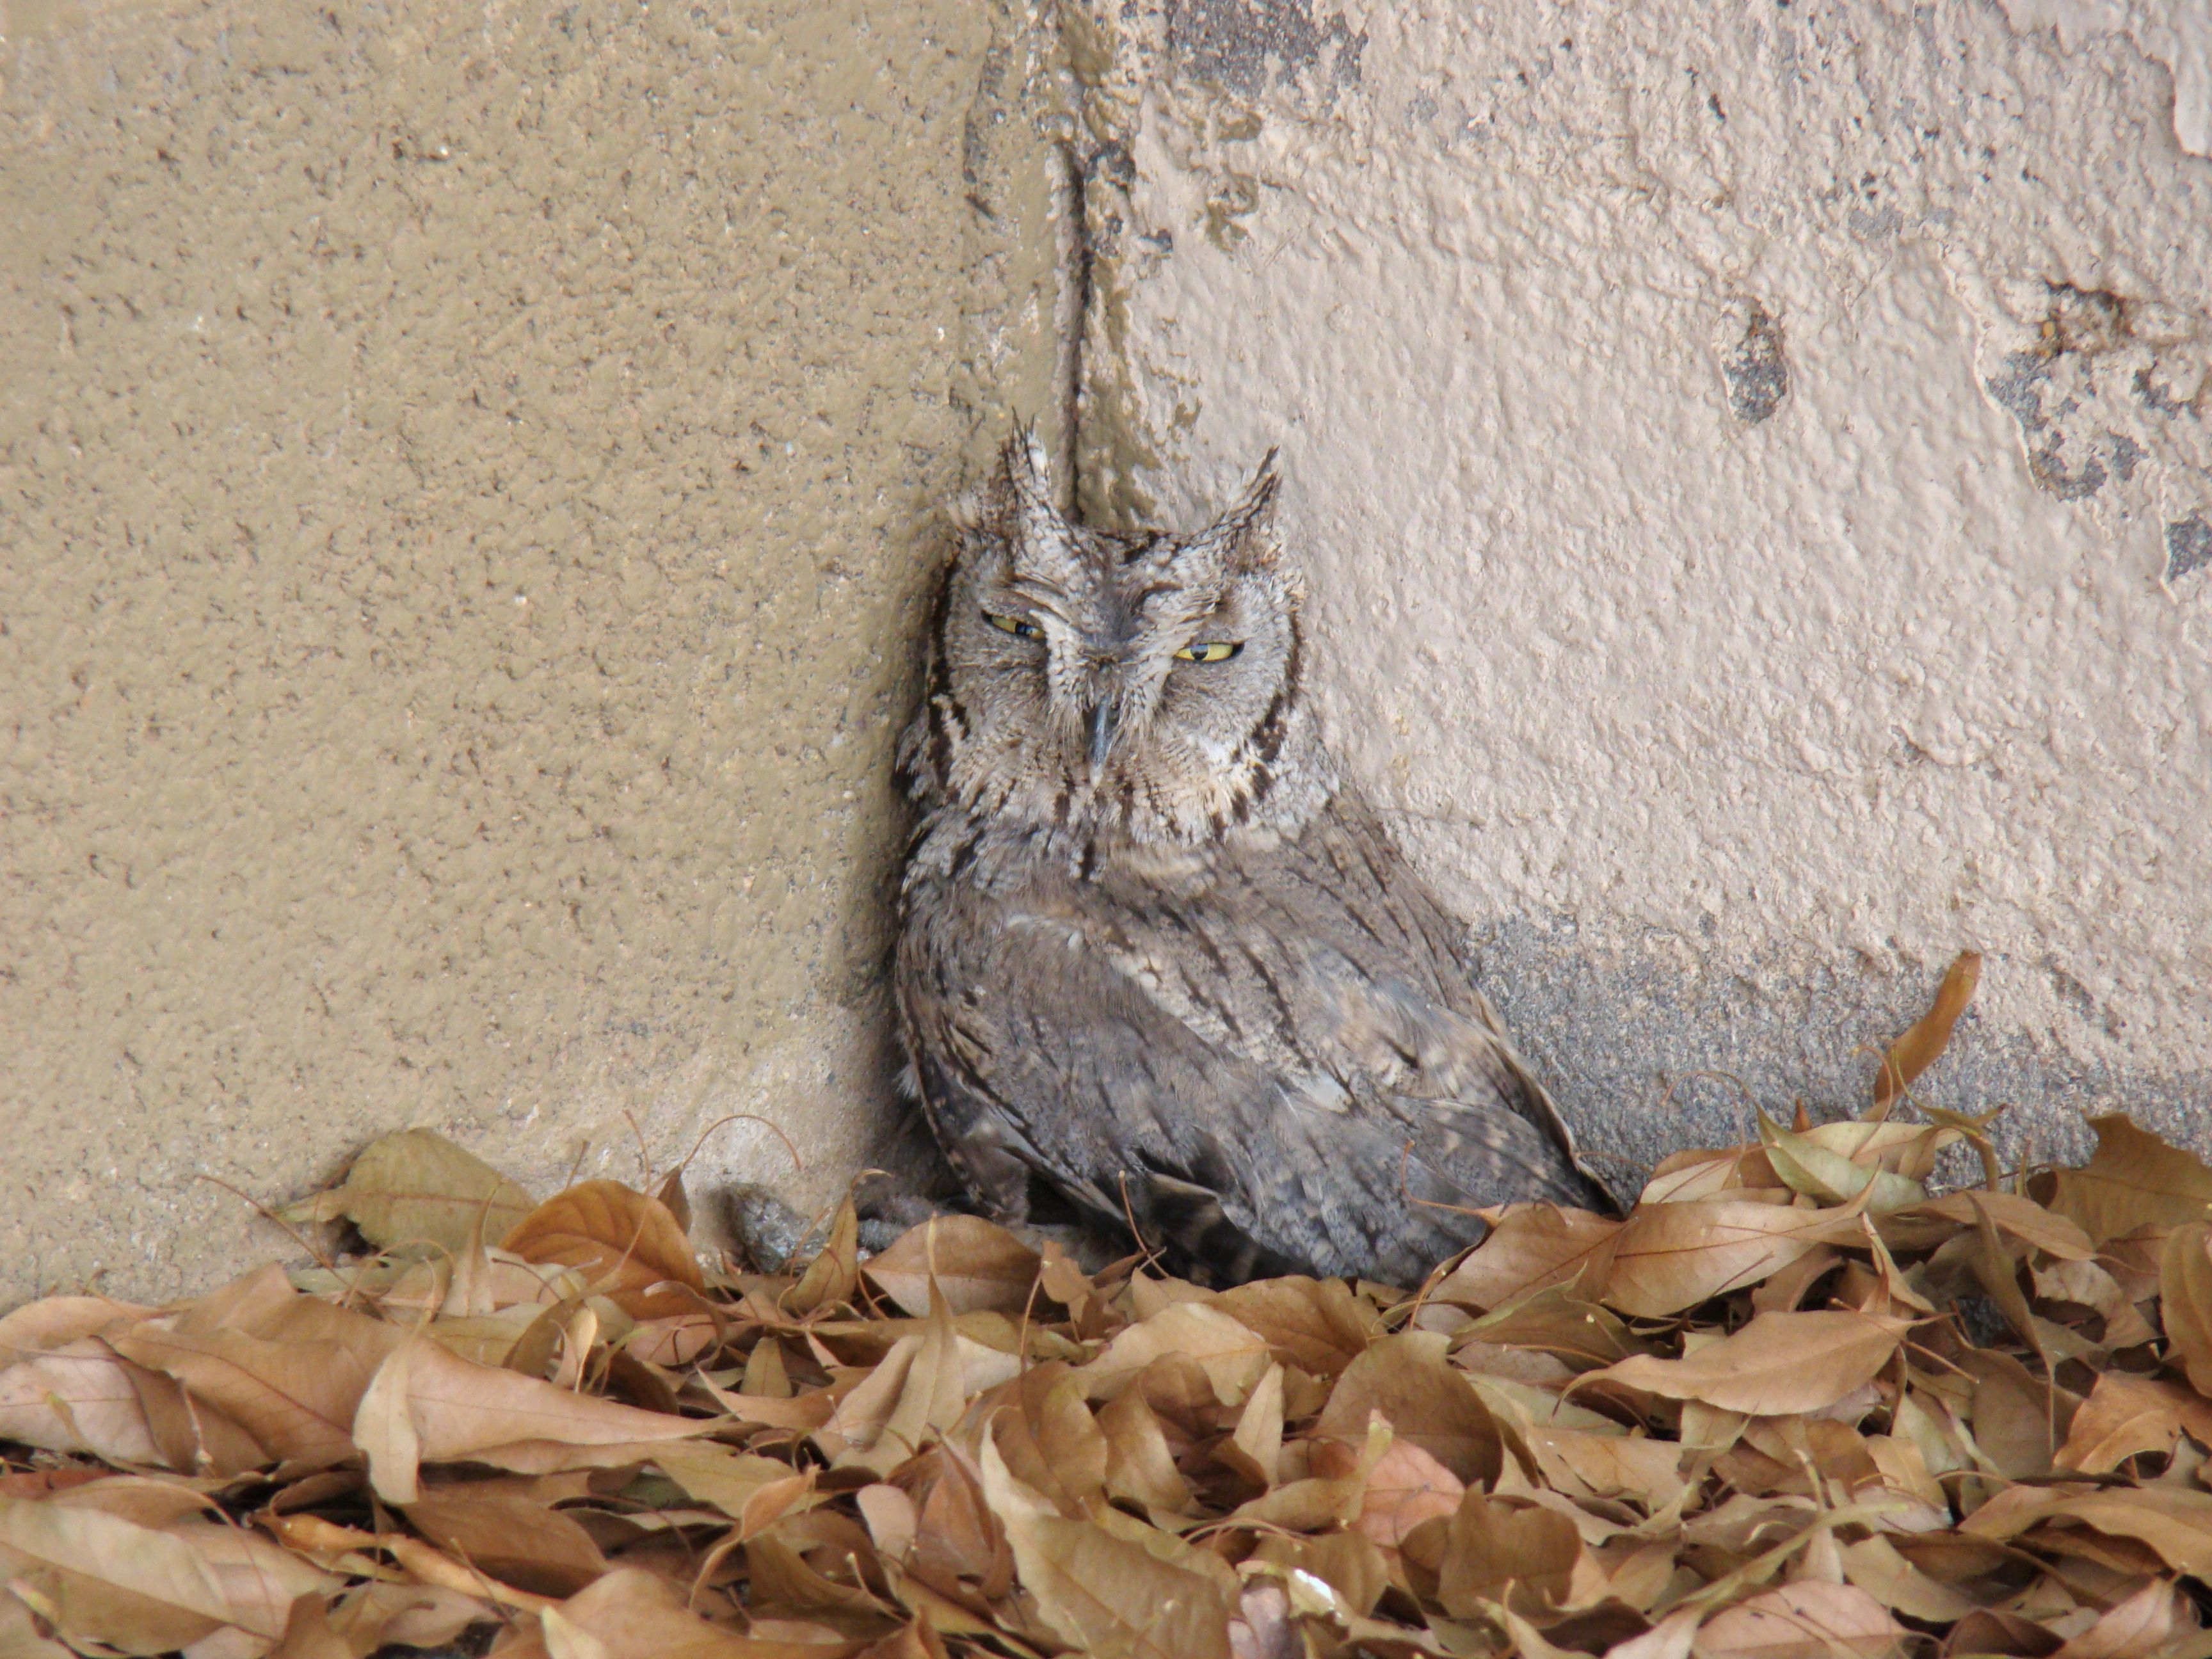 A little screech owl that decided to hang out in my yard.